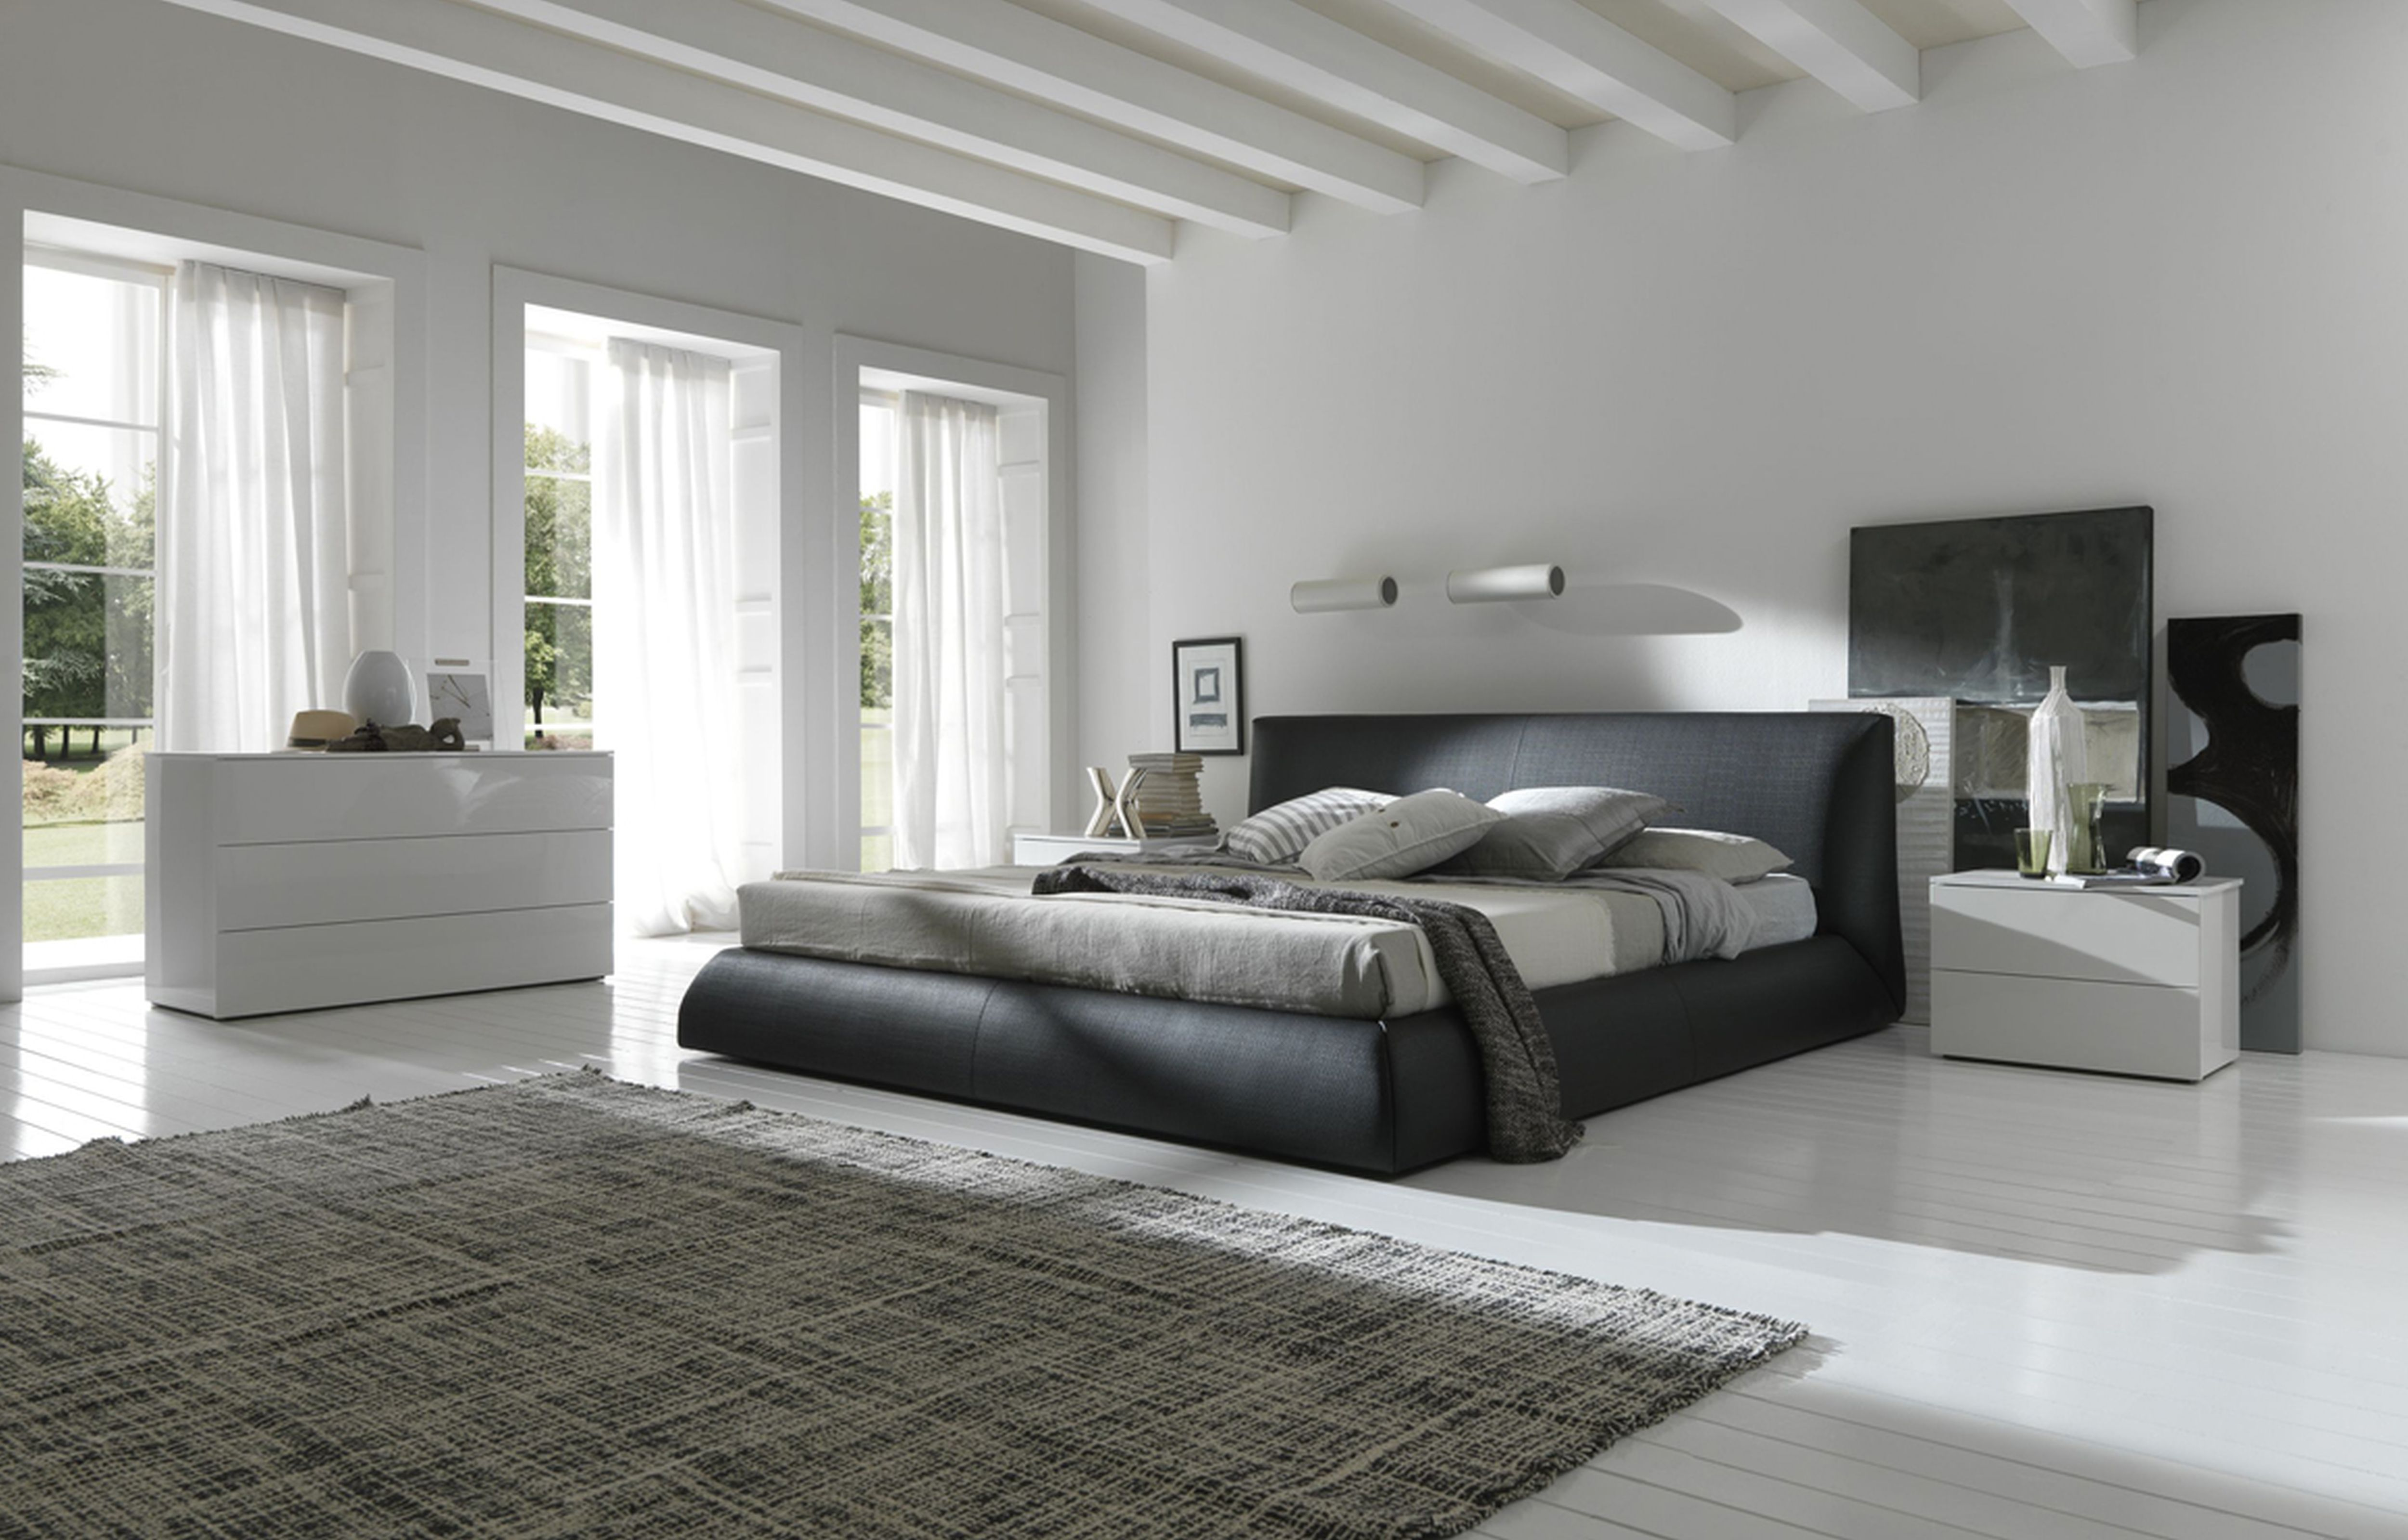 40 Modern Bedroom For Your Home  The WoW Style